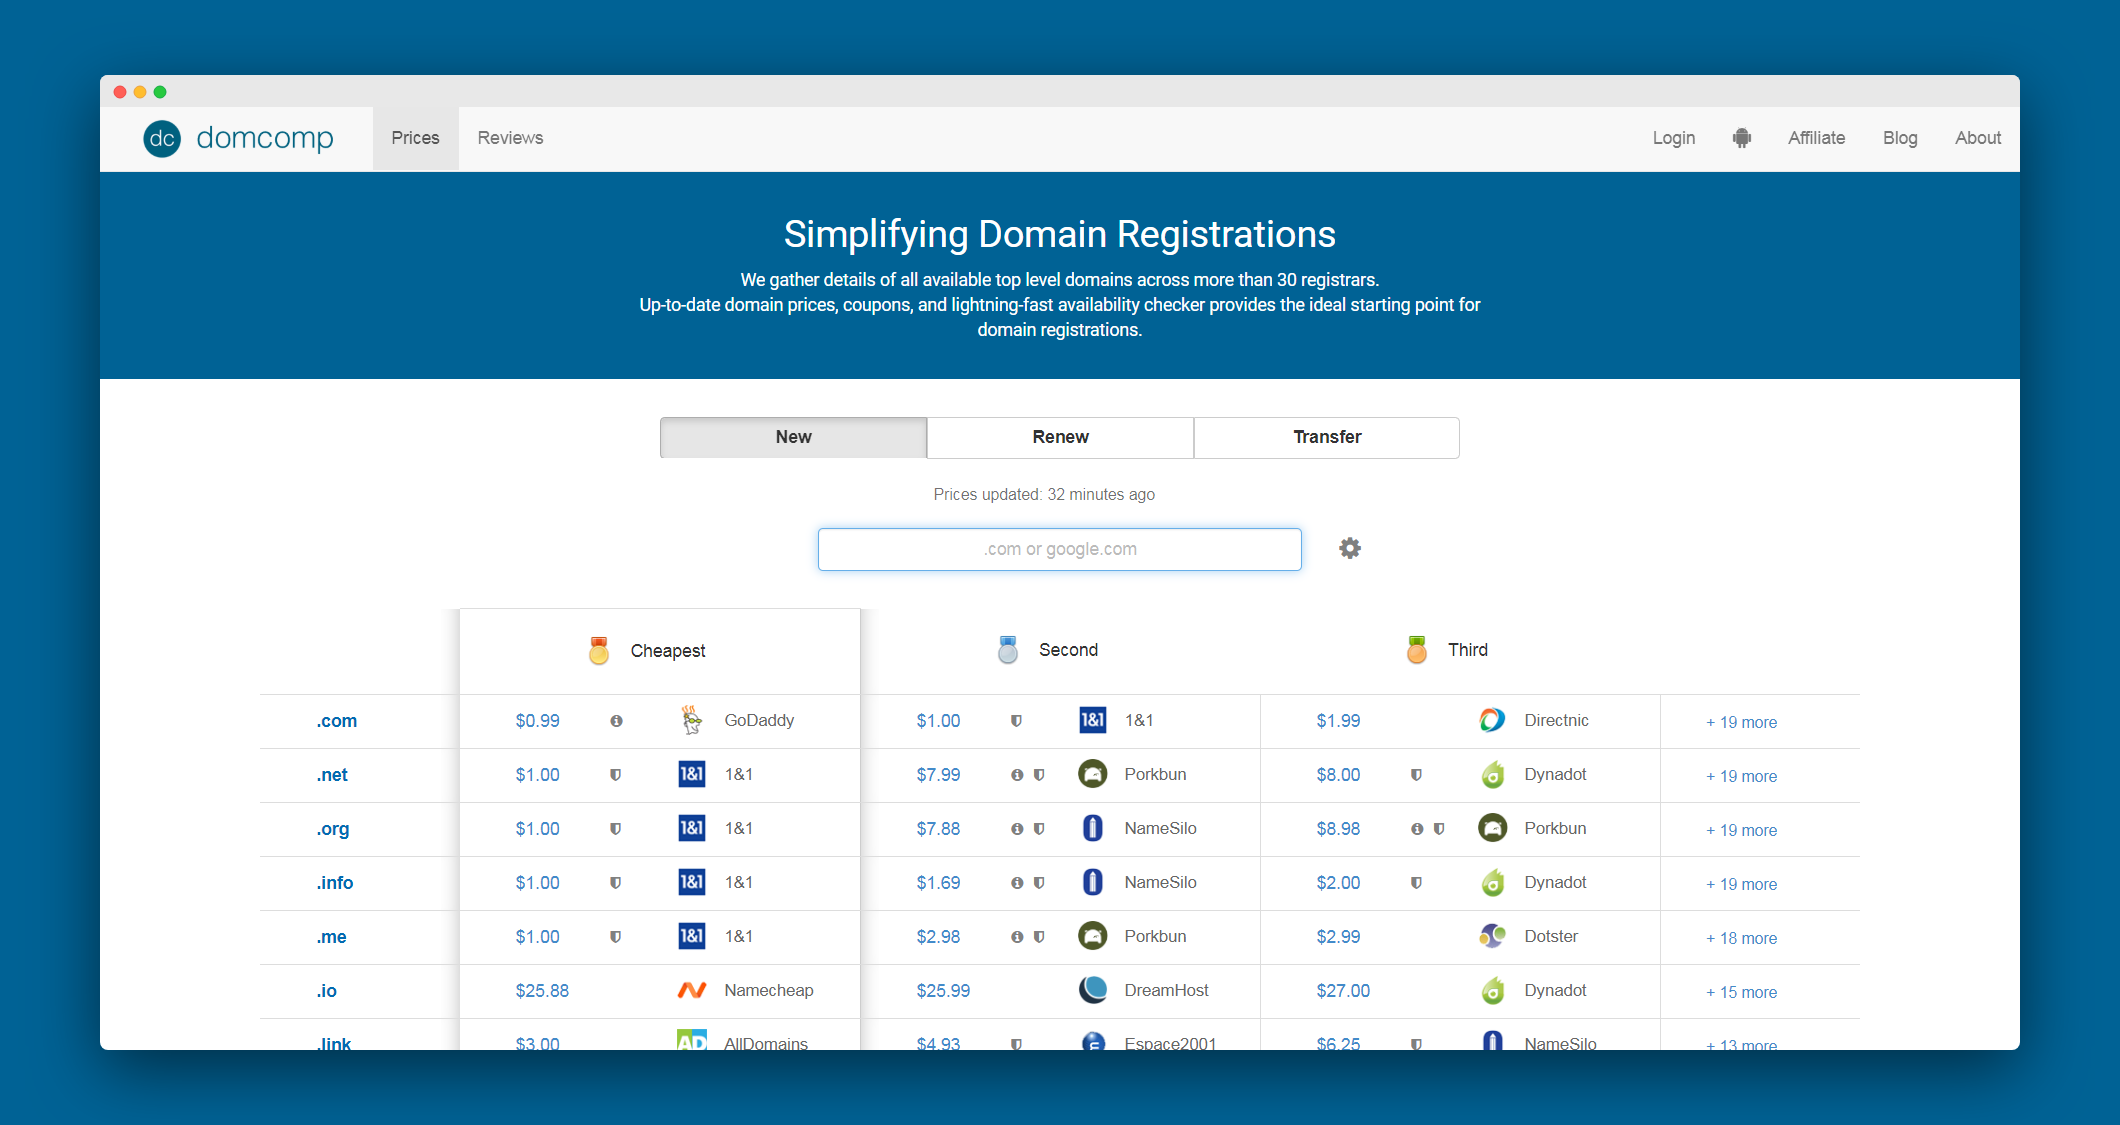 Domain And Compare